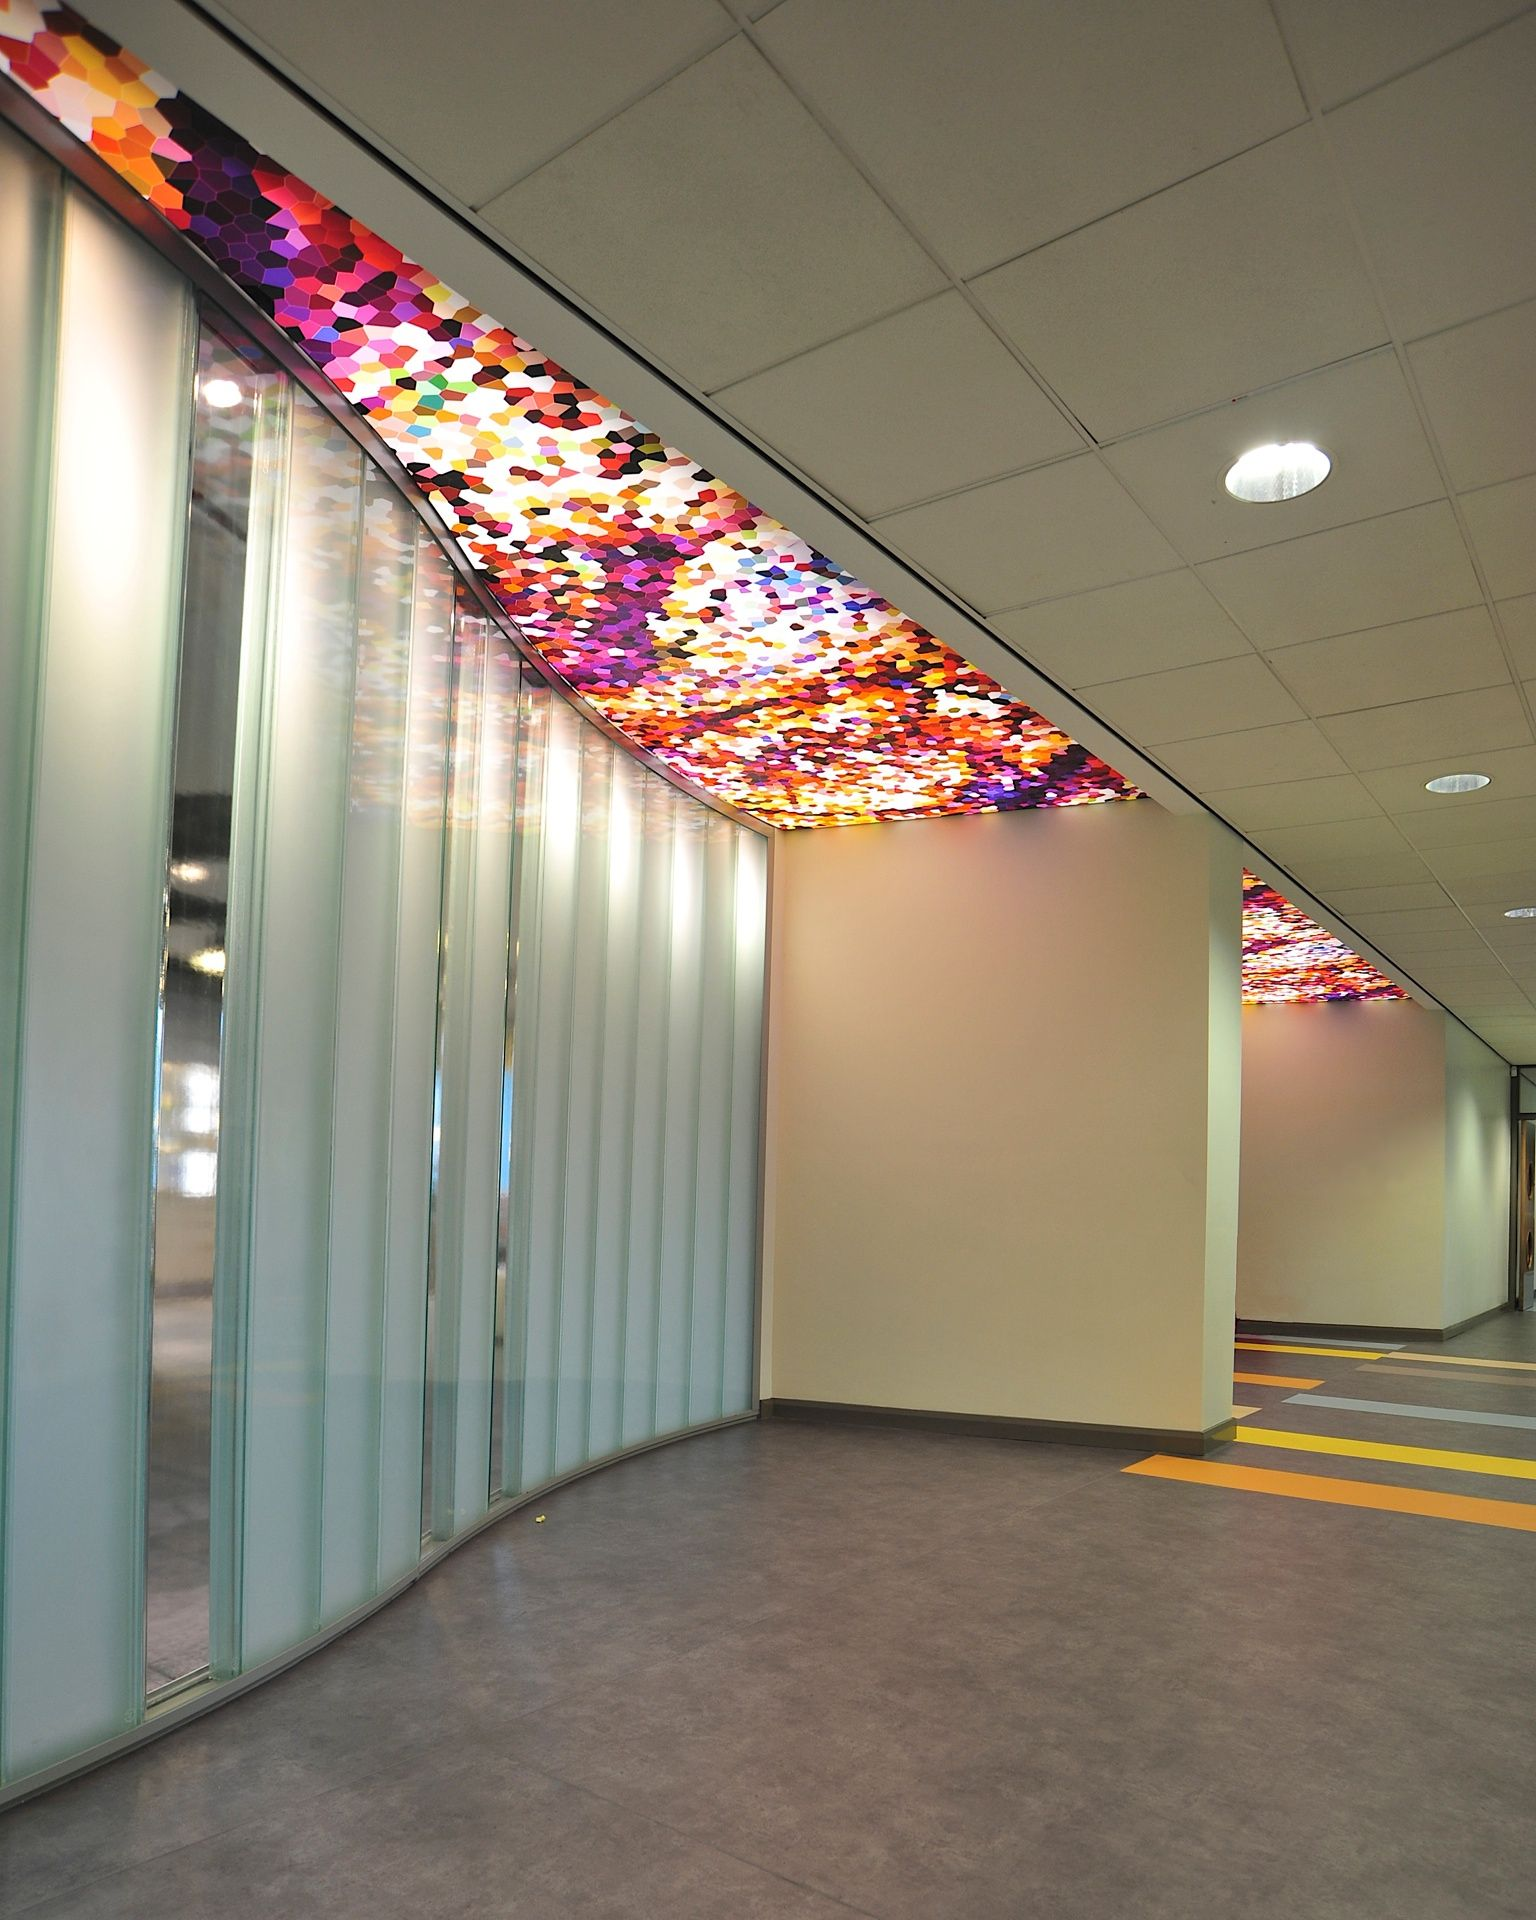 NW Regional College Omagh, With Patterned Backlit Barrisol